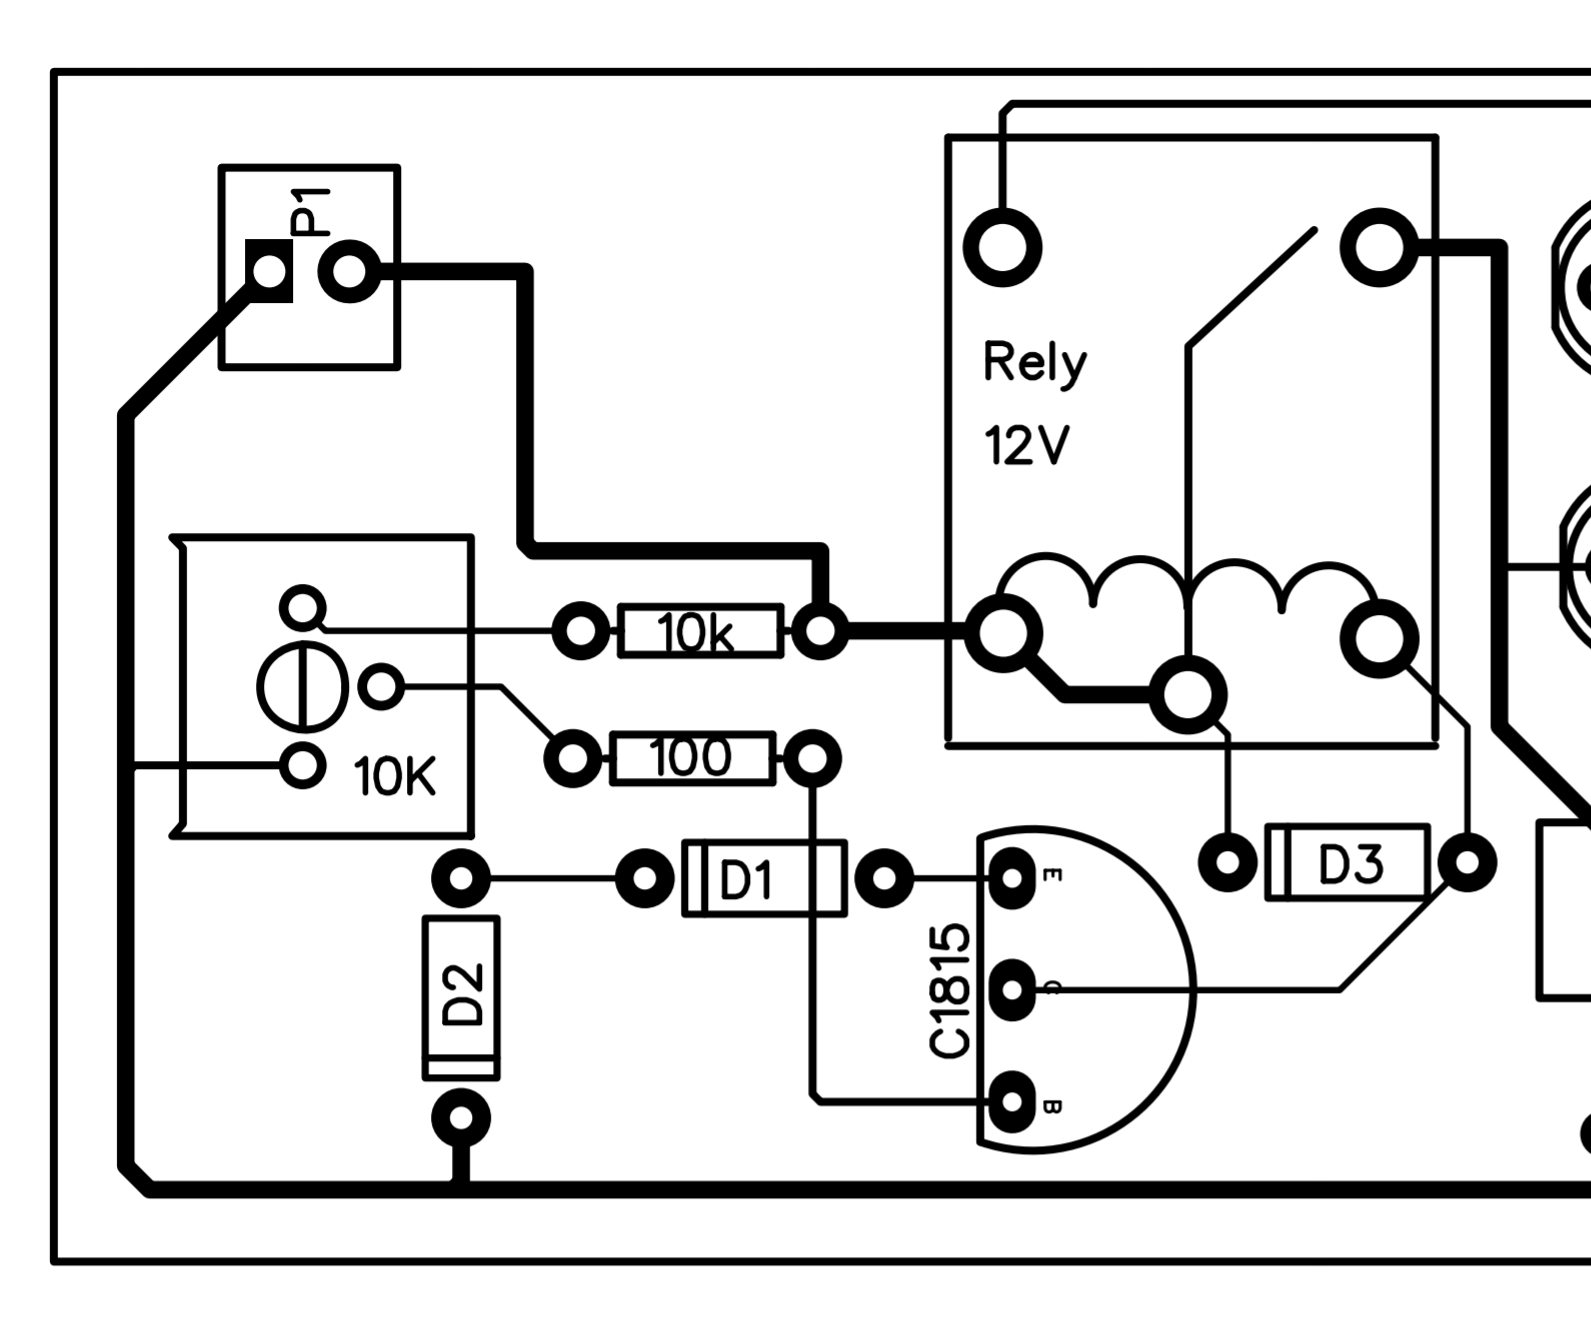 12v Automatic Charger Auto Cut Off 3 Steps With Pictures Wiring Diagram For 12 Volt Emergency Light